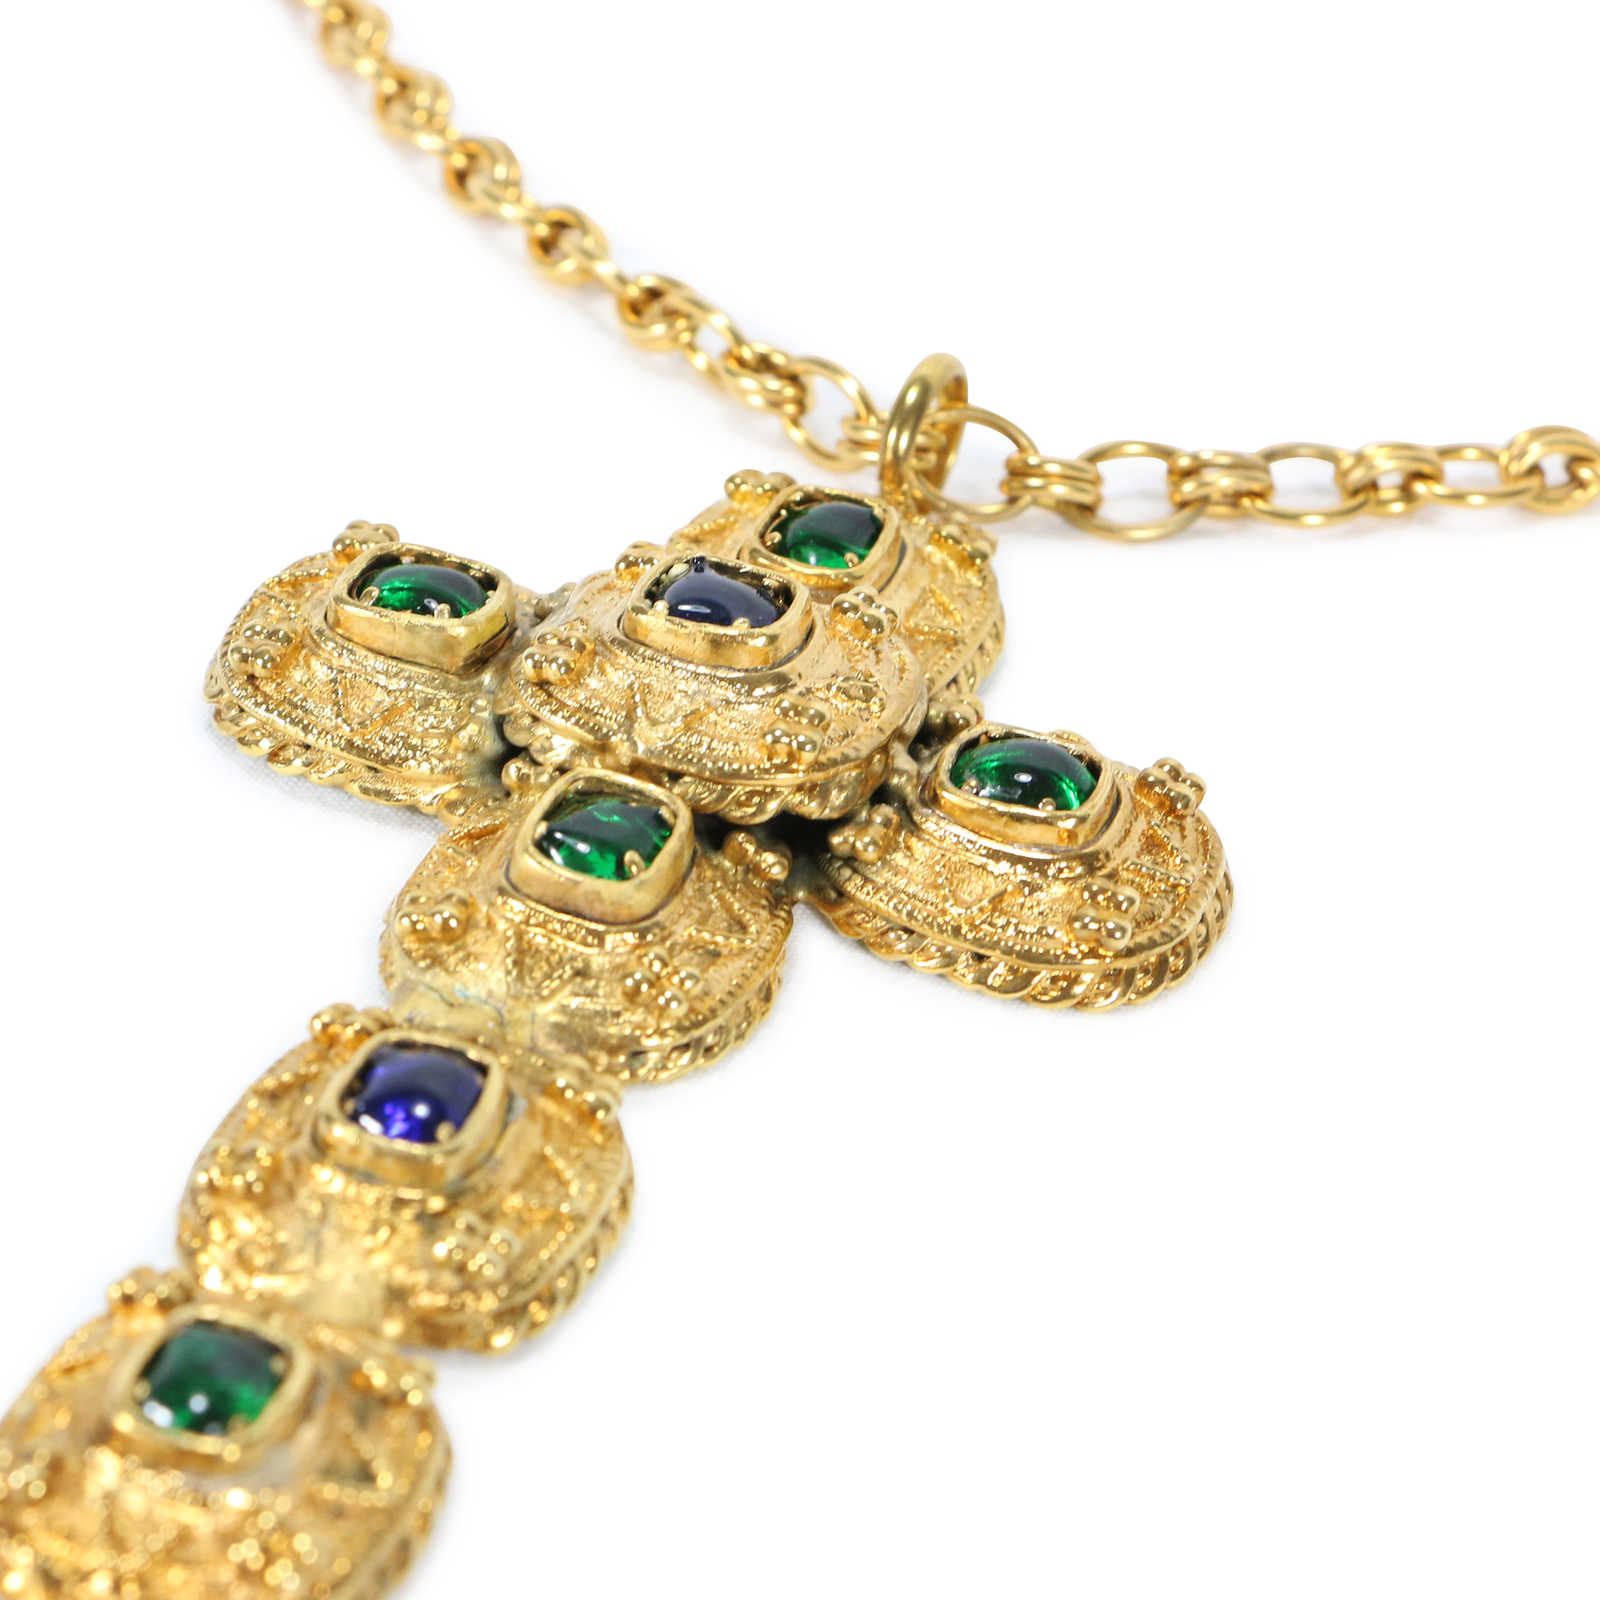 Authentic Vintage Chanel Byzantine Large Cross Necklace (TFC